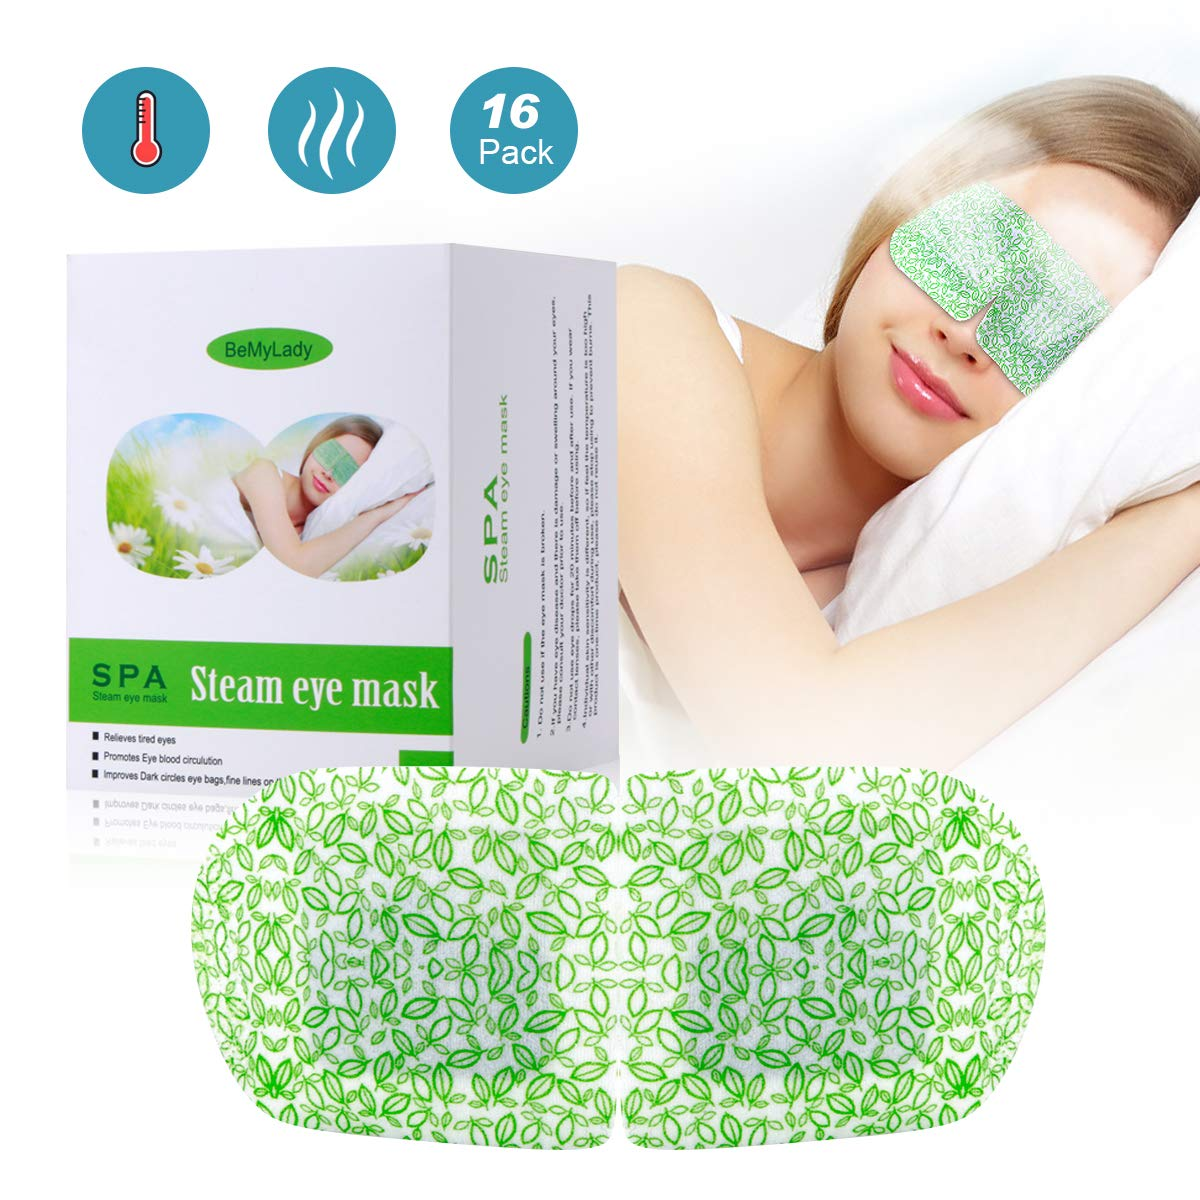 Steam Eye Mask for Dry Eye-Auto Heat Hompress Pad Last for 30 Minters for Relief Eye Fatigue, Improve Blurred Vision,Dark Circles Eye Bags, 16 Pack